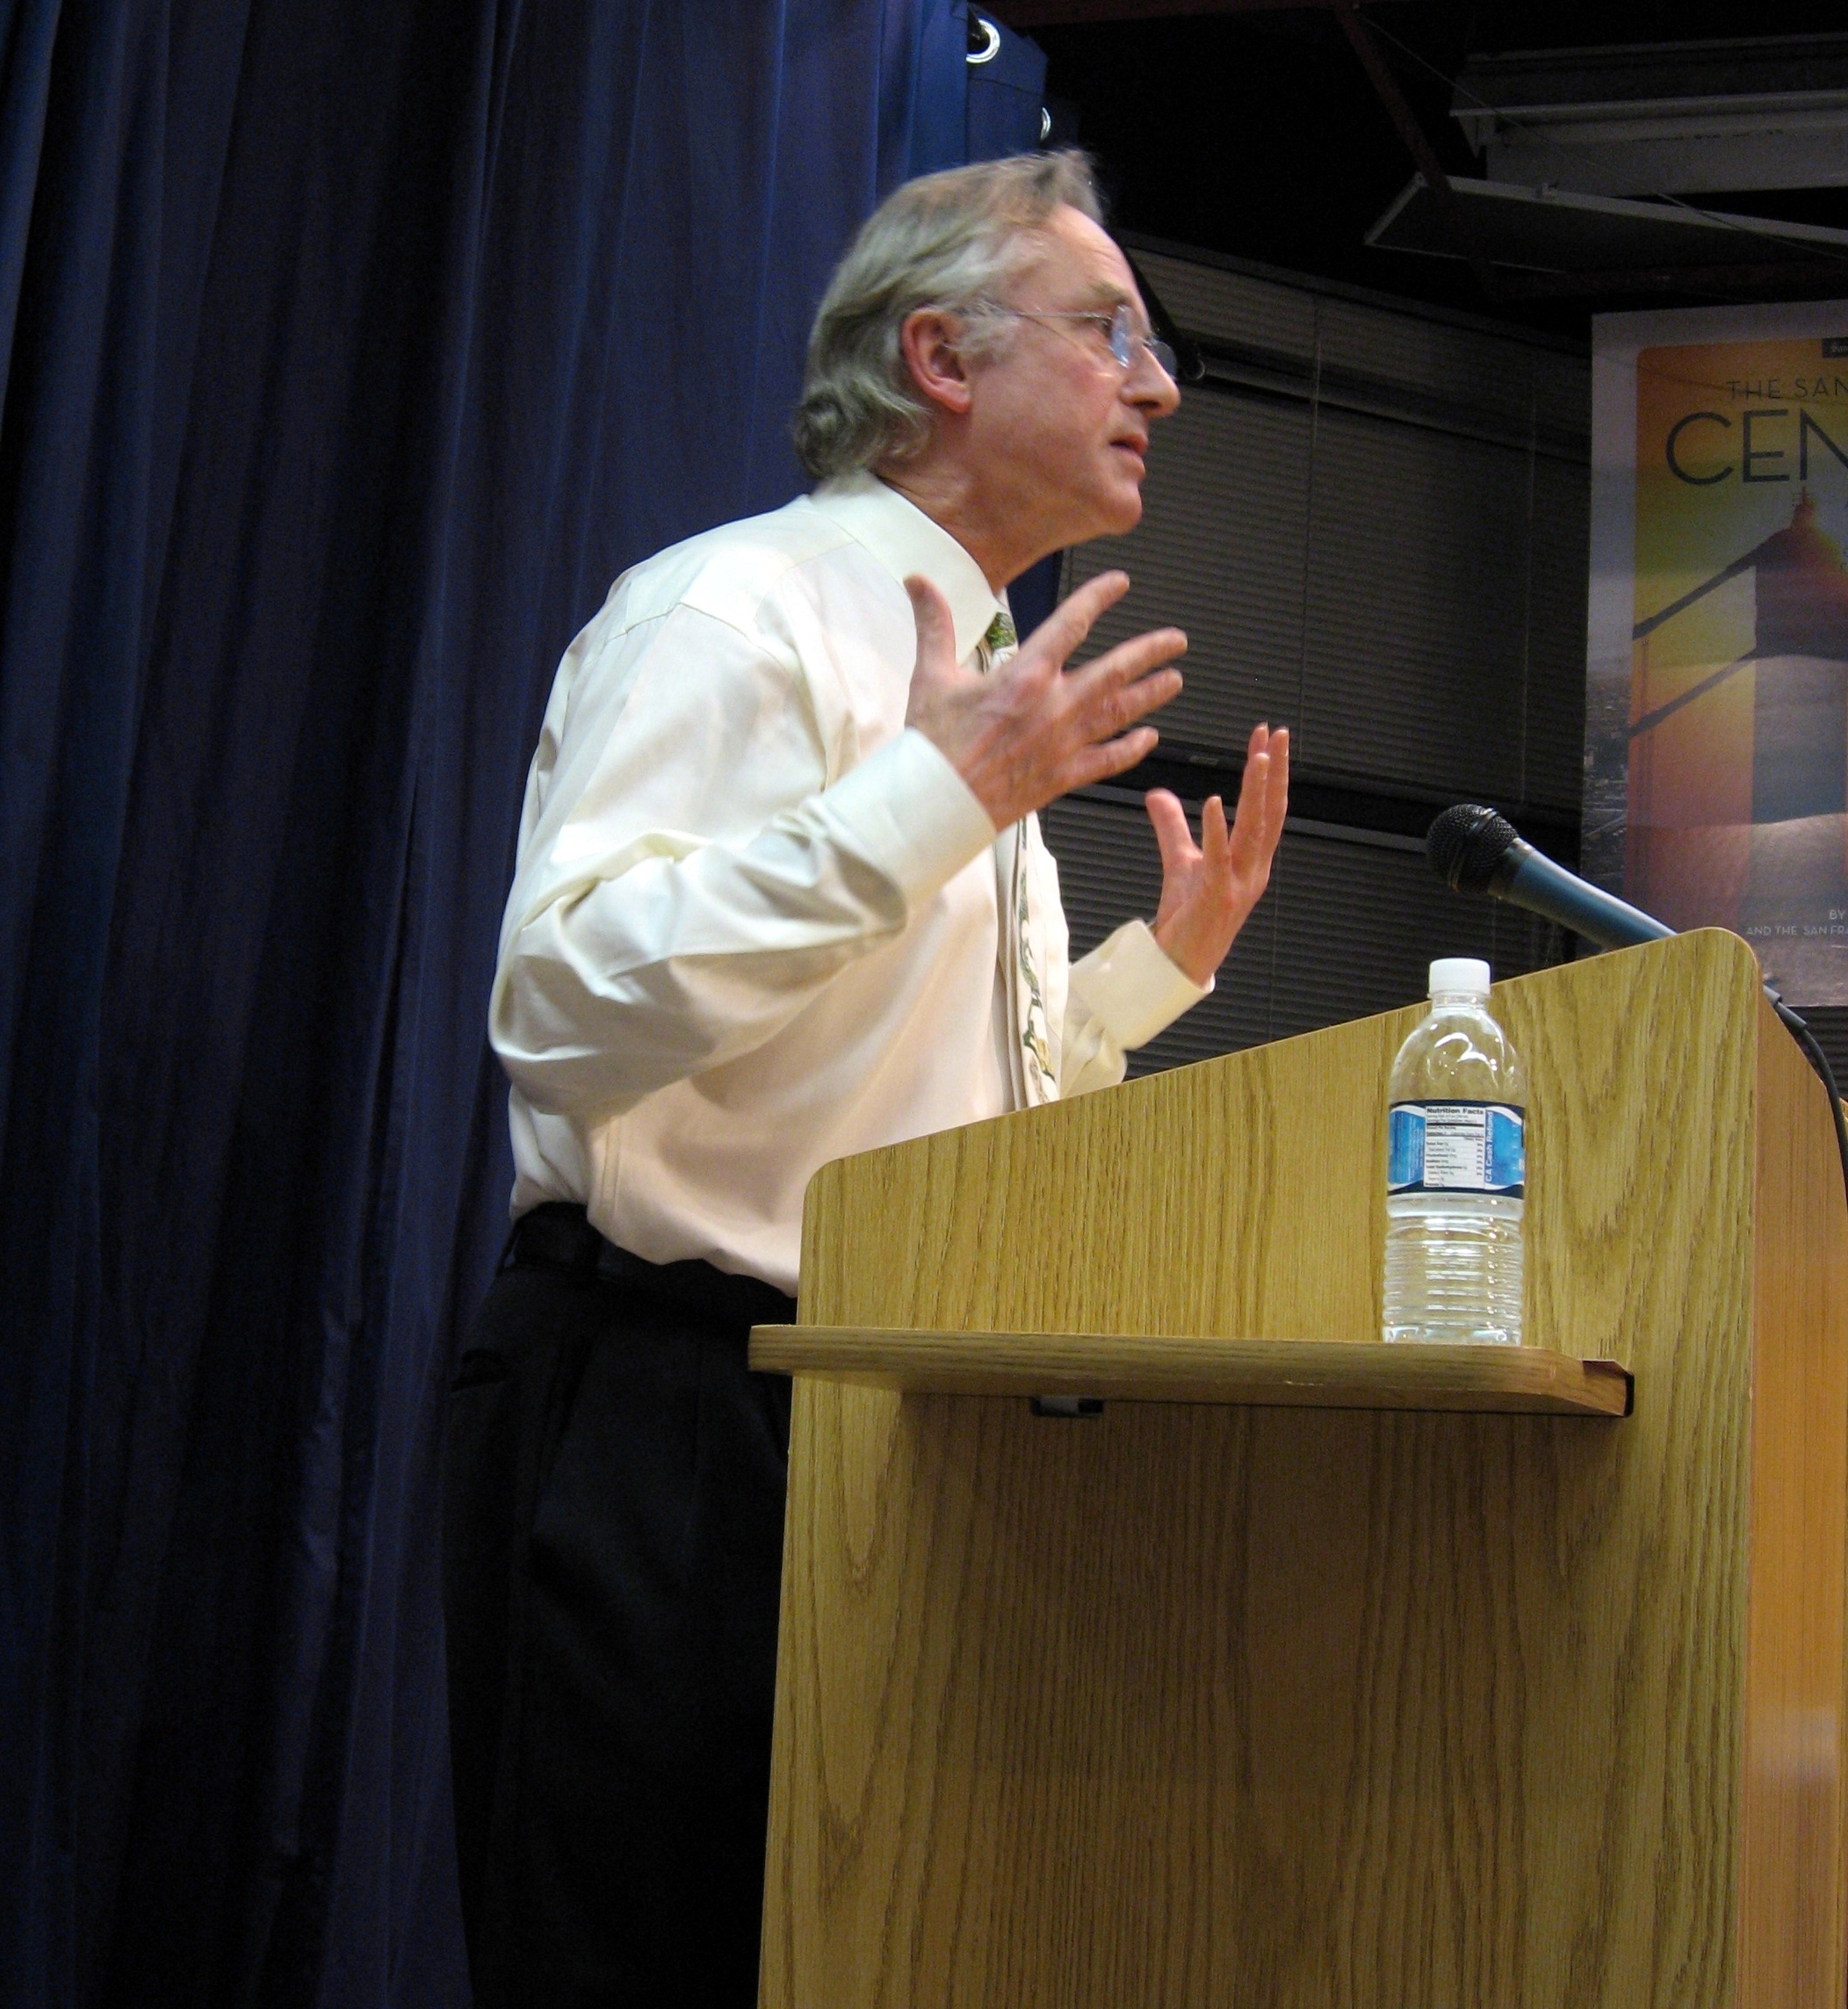 Richard_Dawkins_2006.jpg